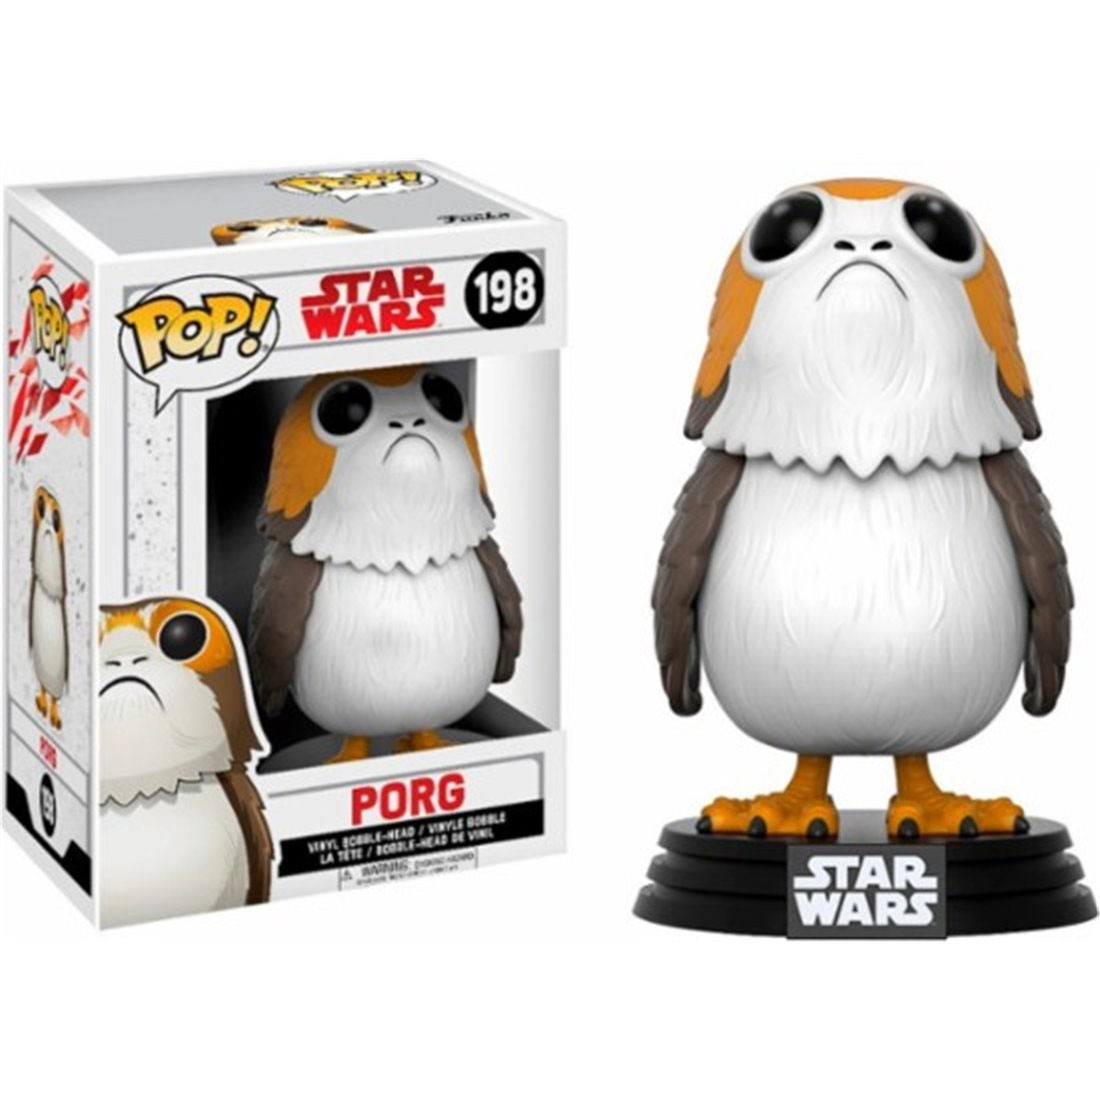 Star Wars Porg Funko Pop Vinyl Figure